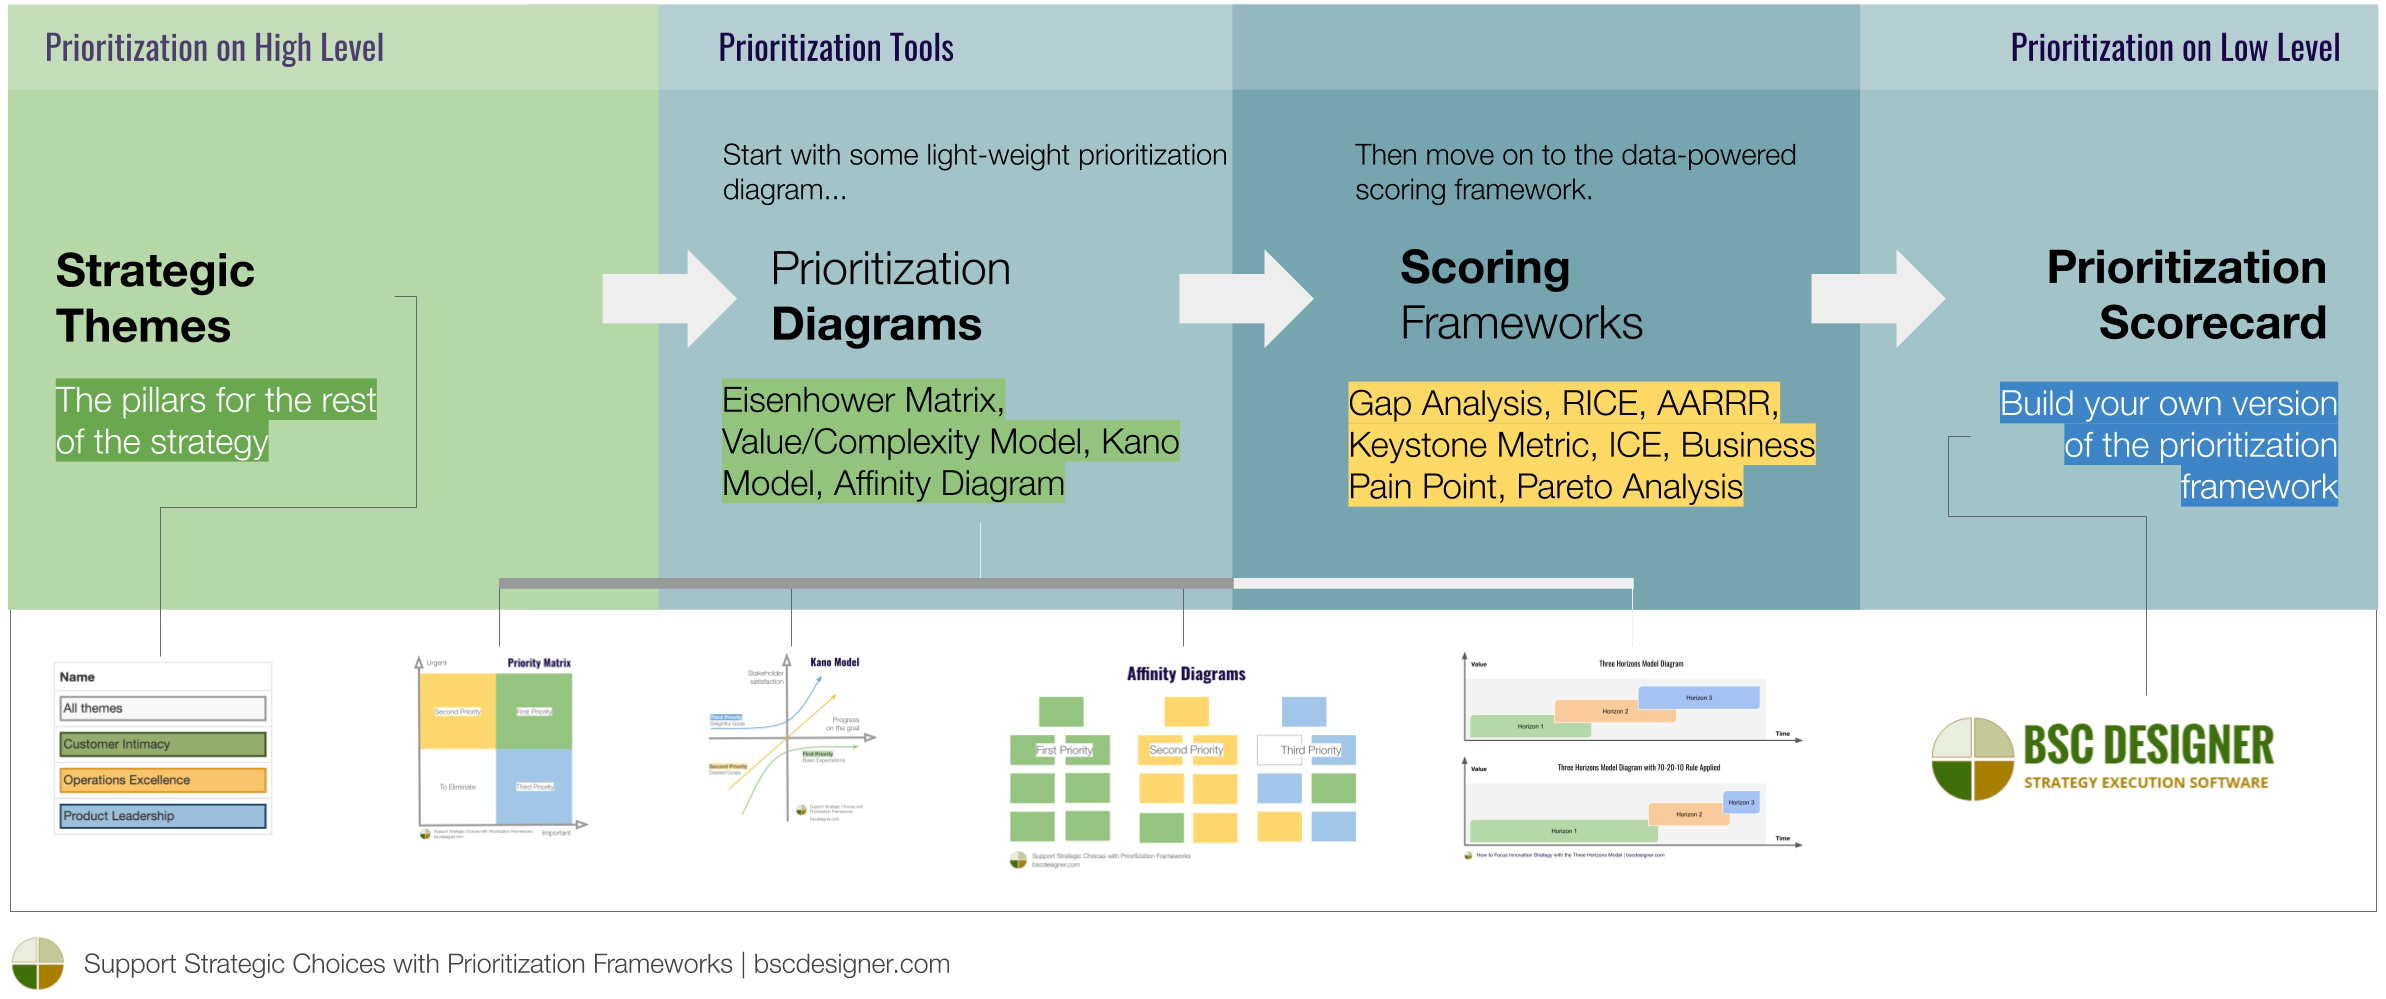 Strategic Choices with Prioritization Frameworks - Prioritization Tools